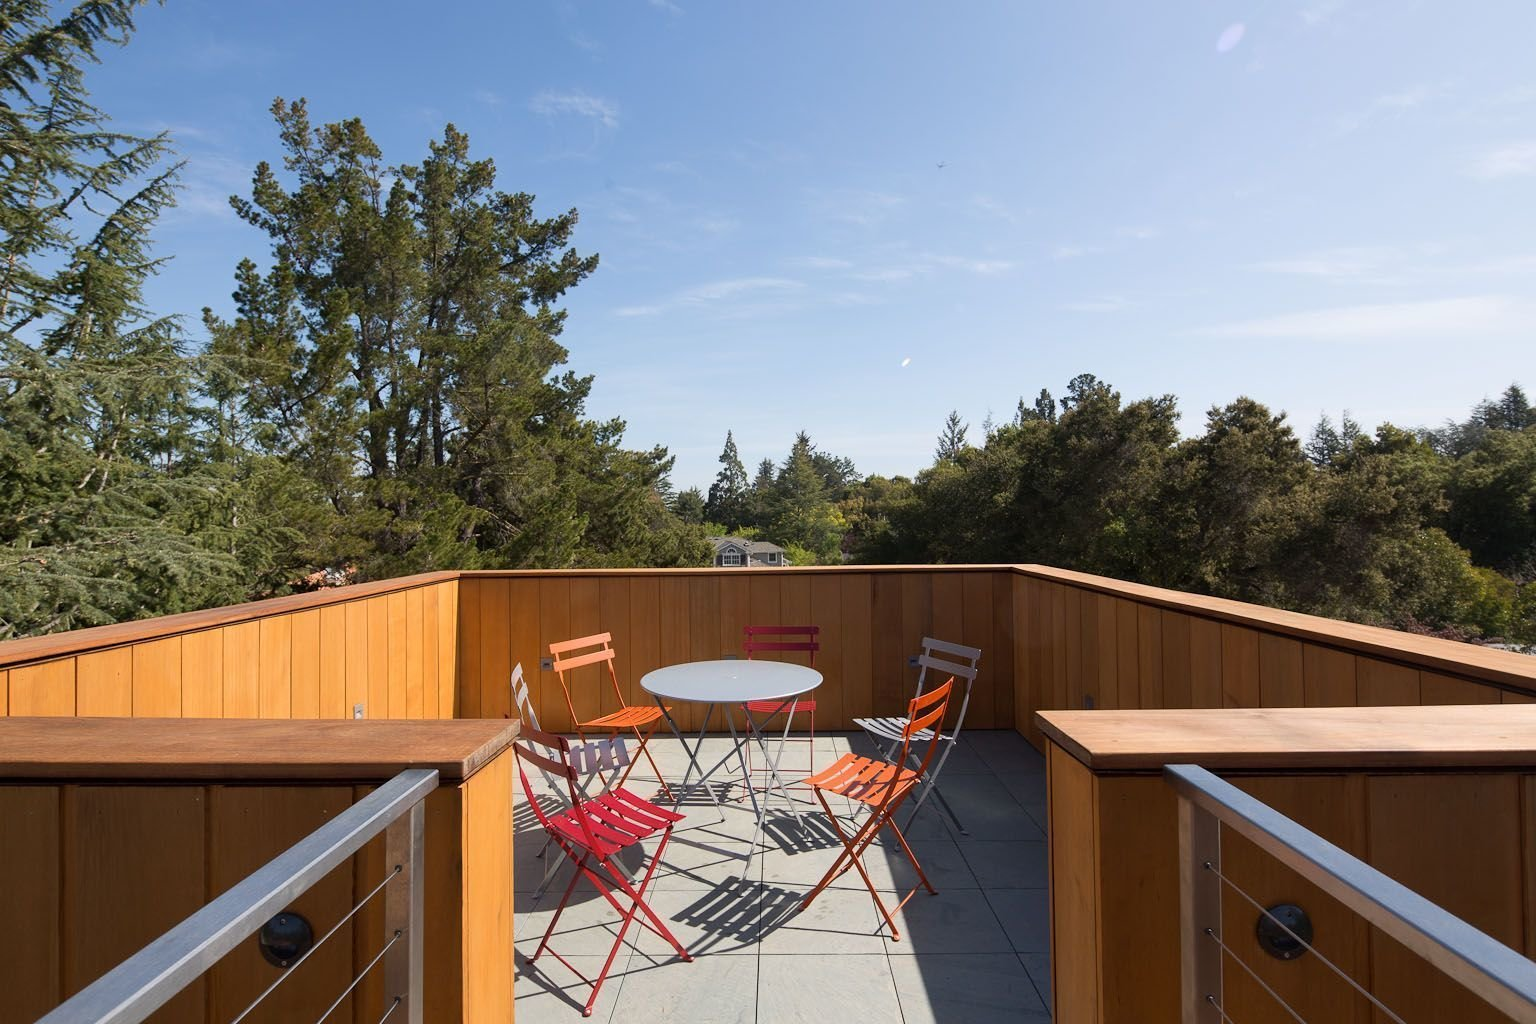 silicon valley smart home spiegel aihara workshop rooftop